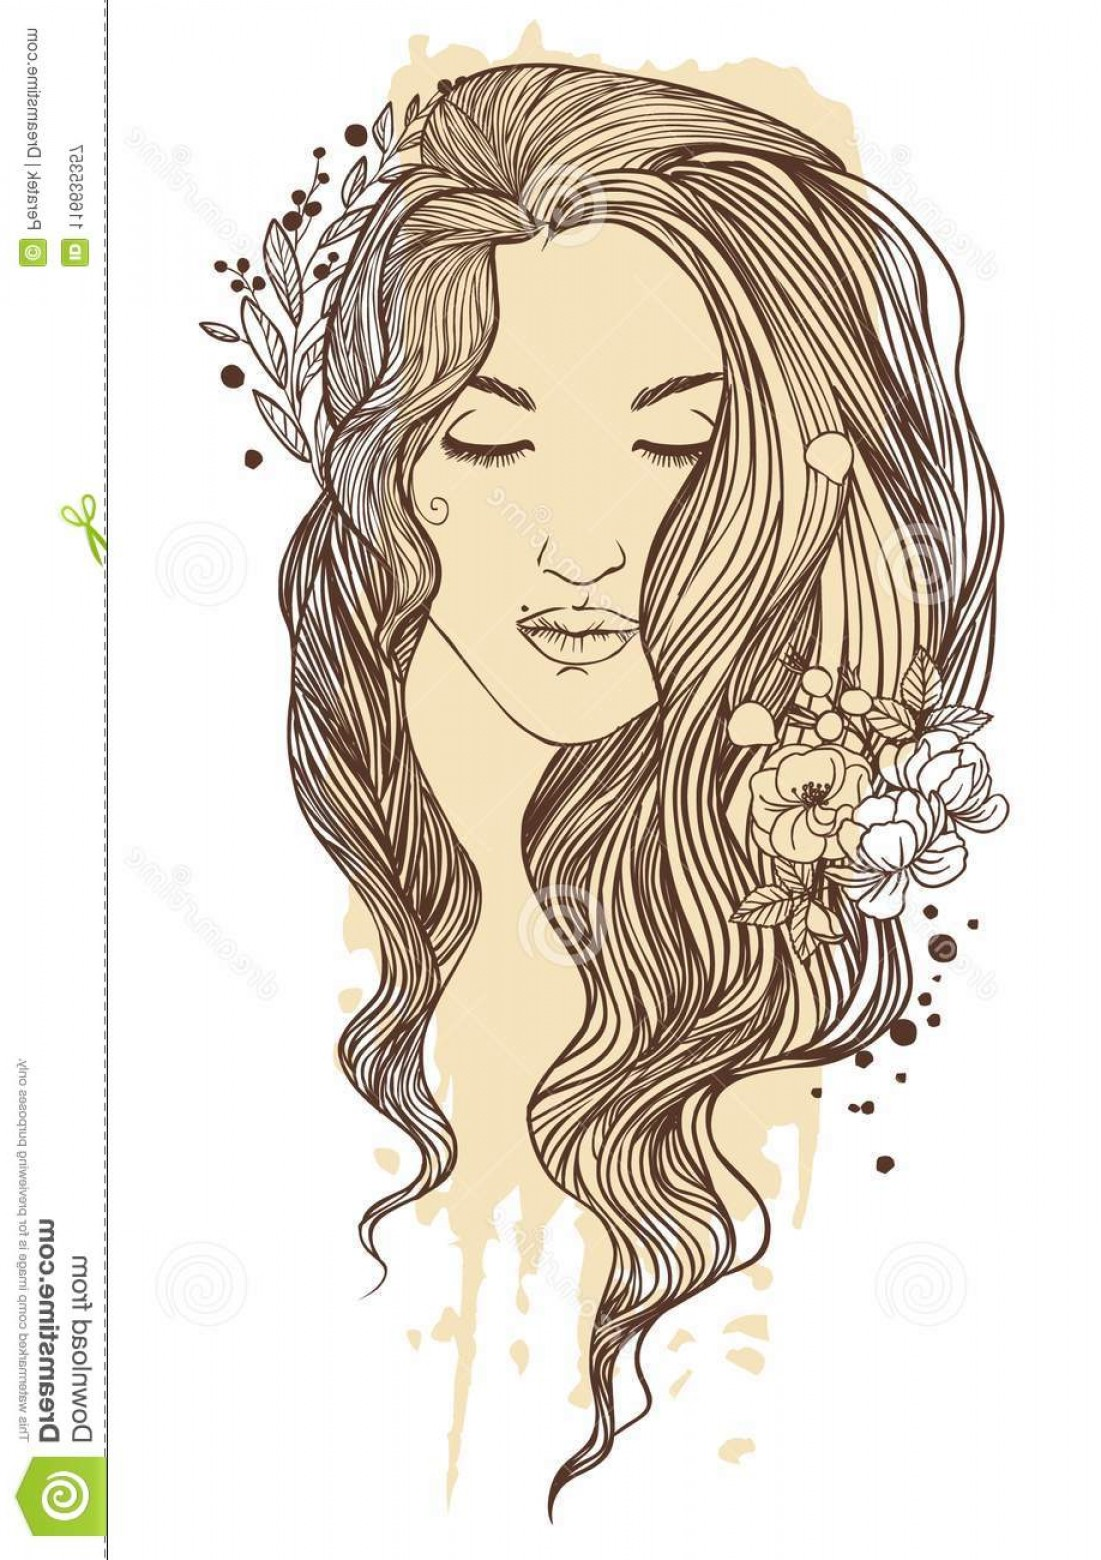 Woman boho curlygirls clipart Transparent pictures on F.